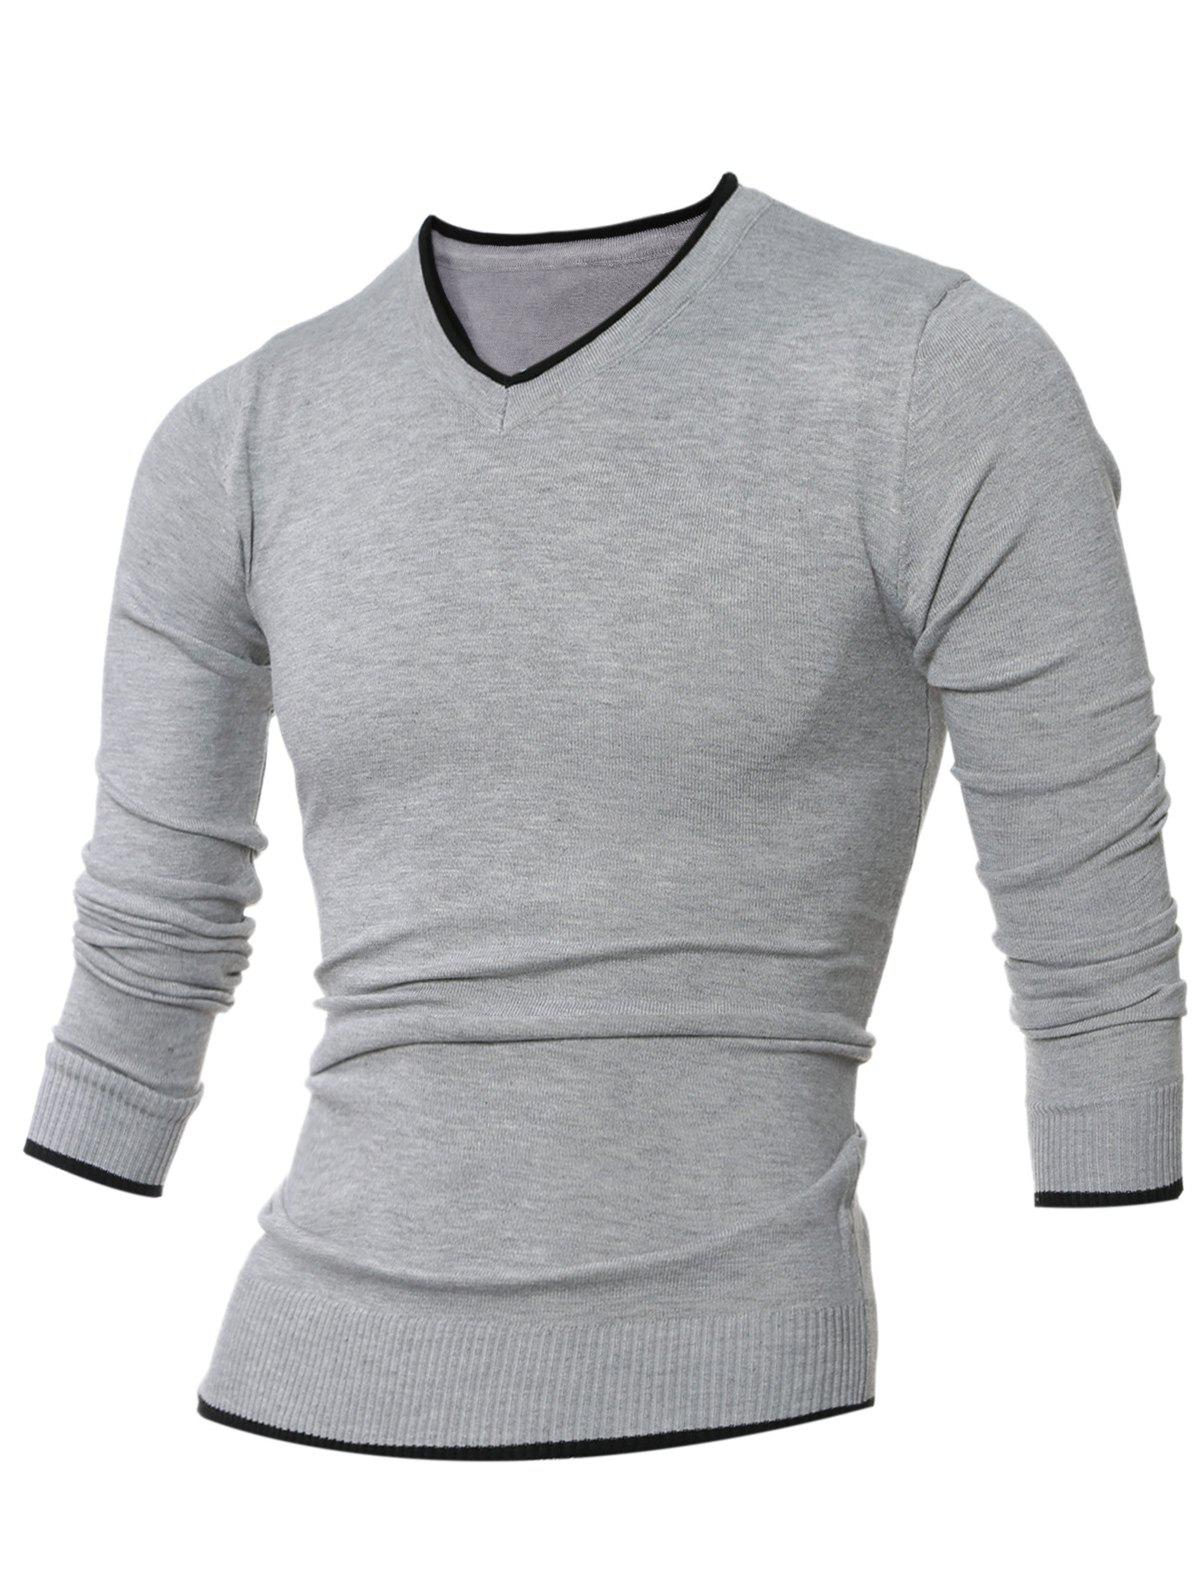 Sale V Neck Selvedge Embellished Knitting Sweater